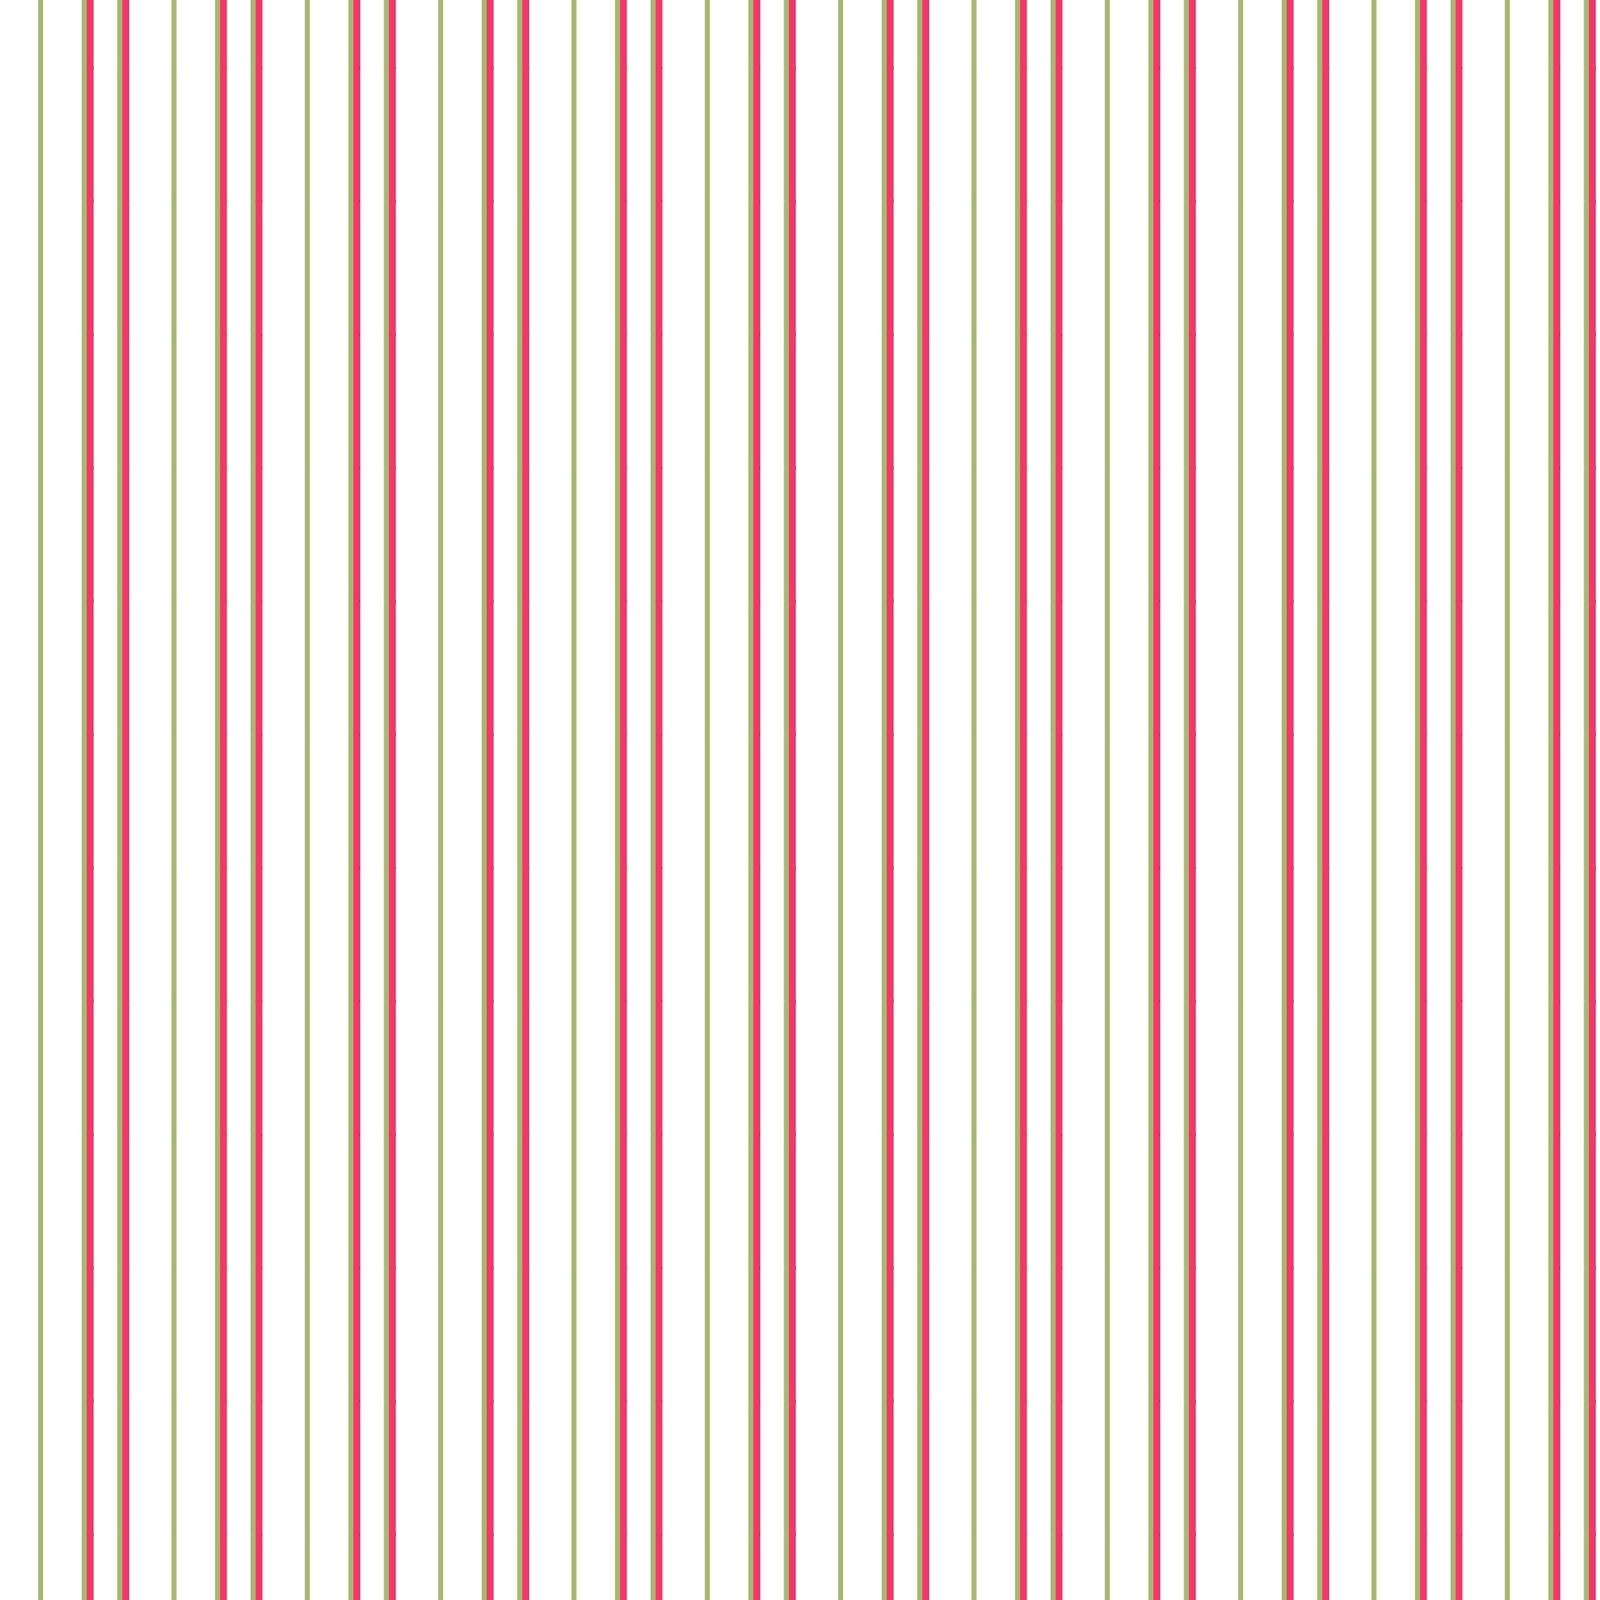 Paper Digital Stripes Scrapbook Background